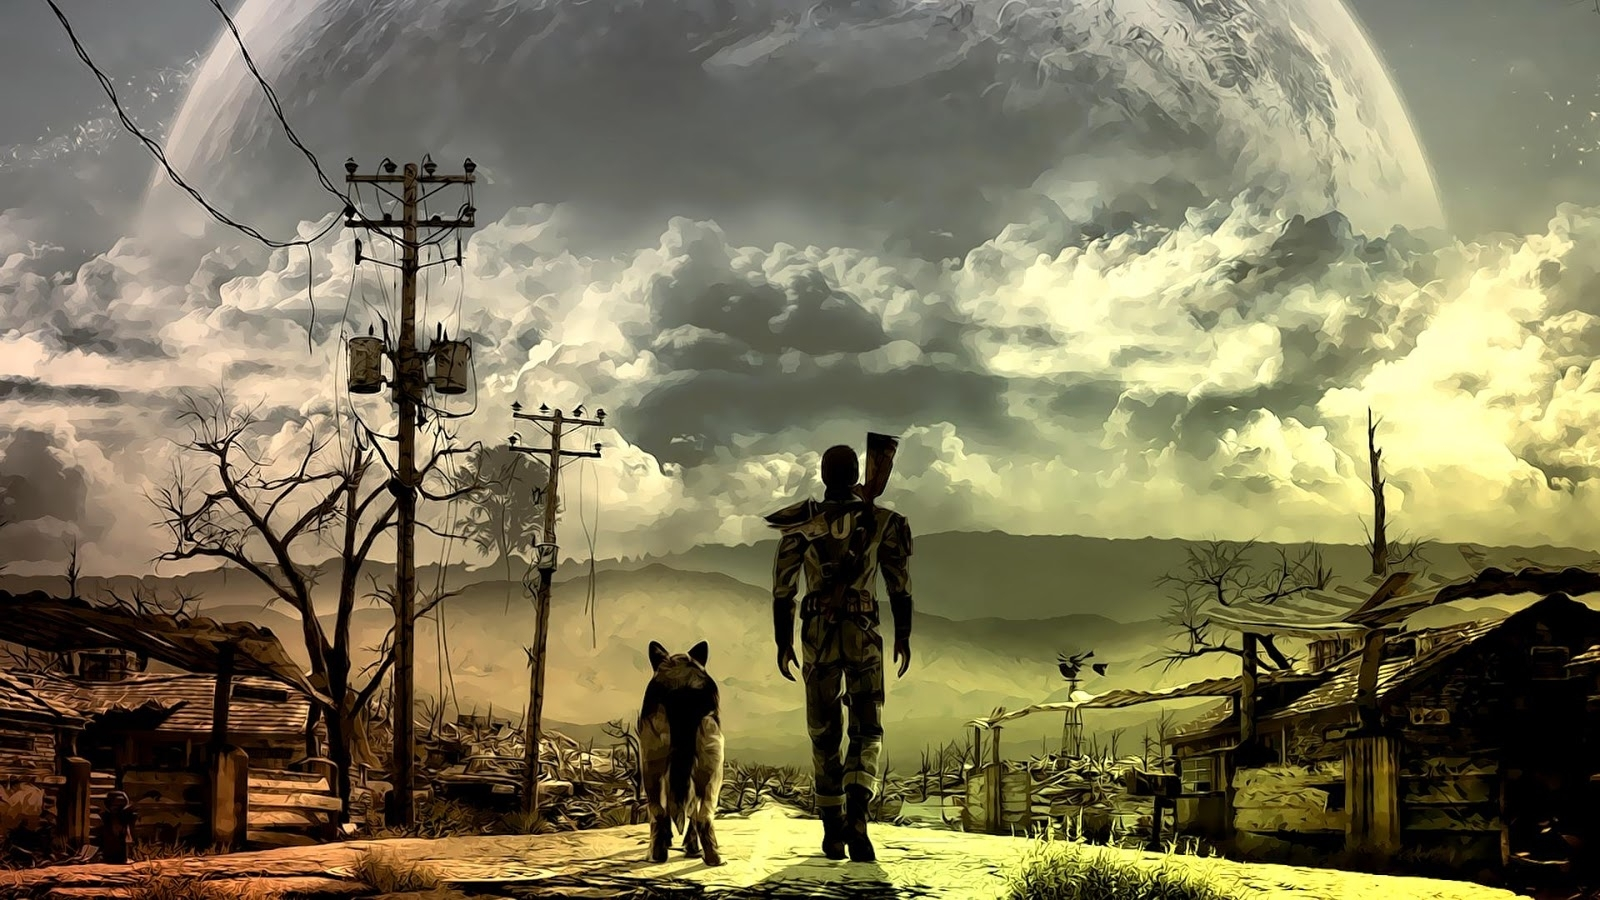 b.h gaming blog: fallout game story + background part 1